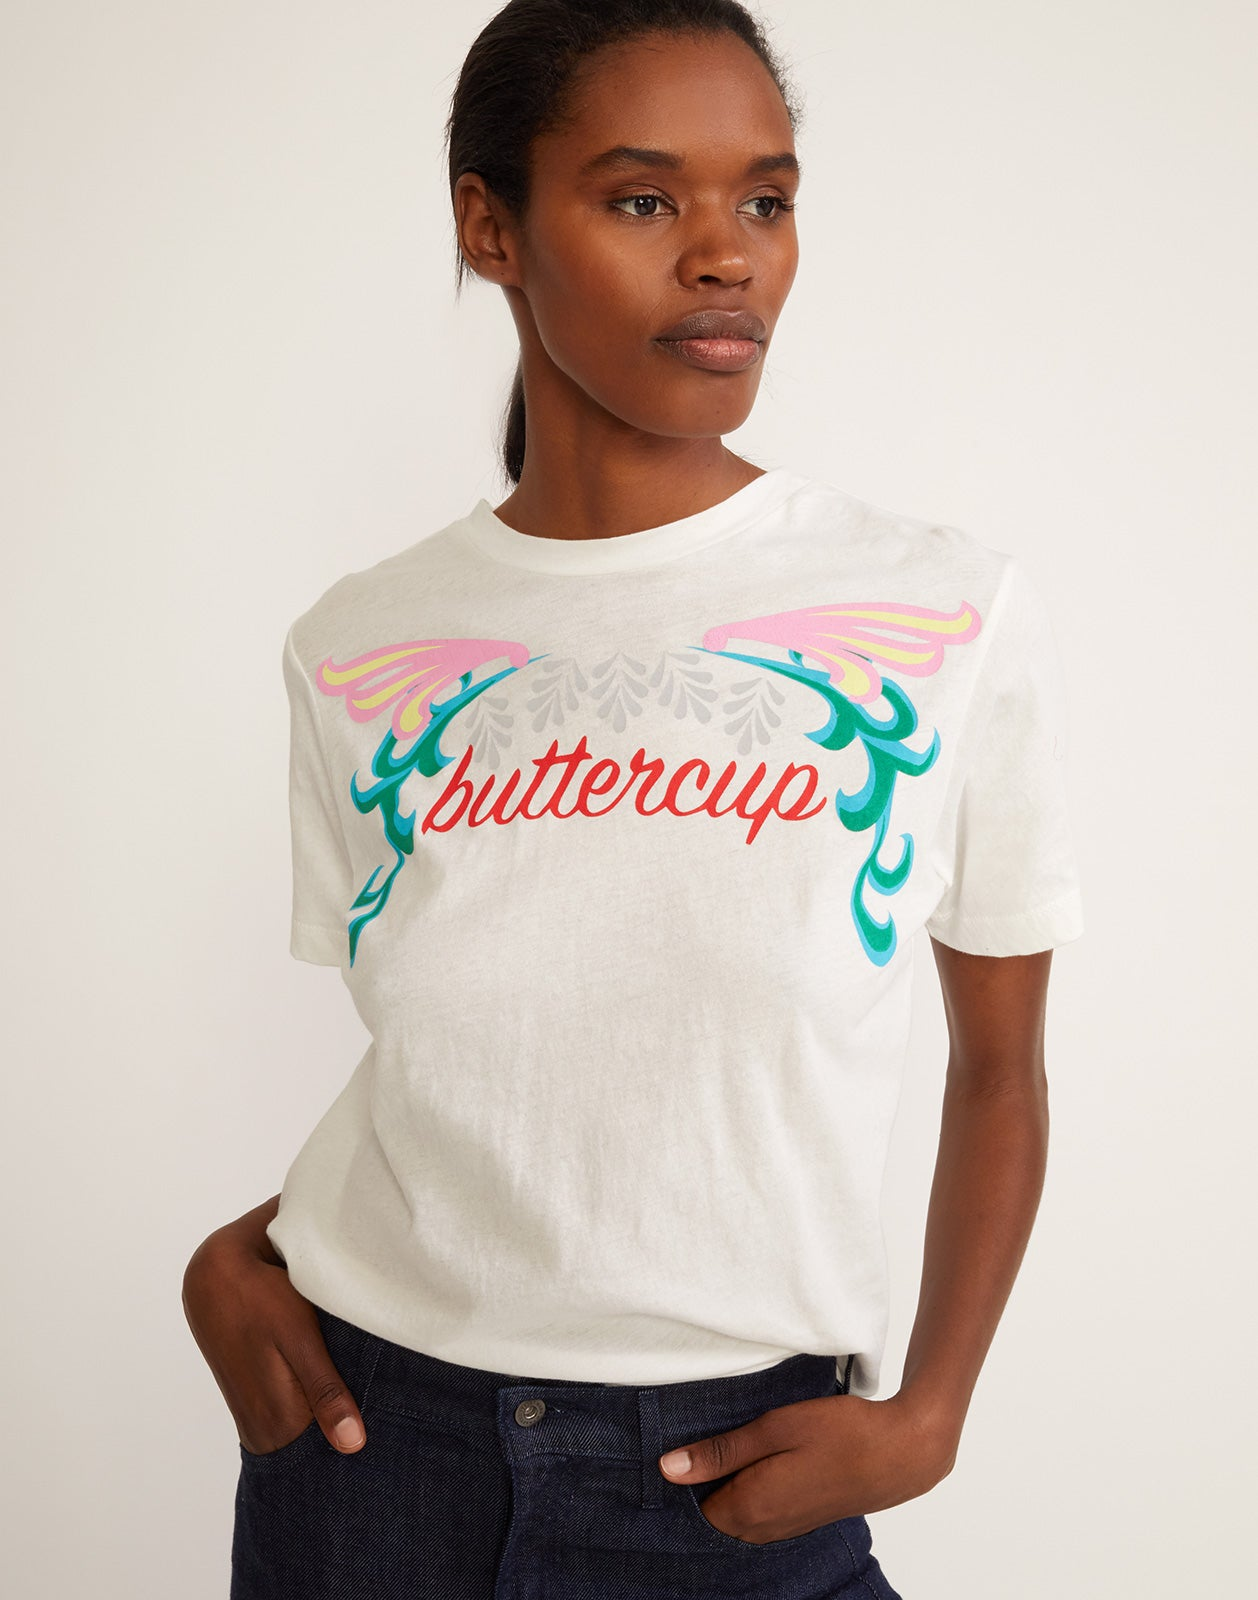 Close view of white tee with 'buttercup' printed across the front.